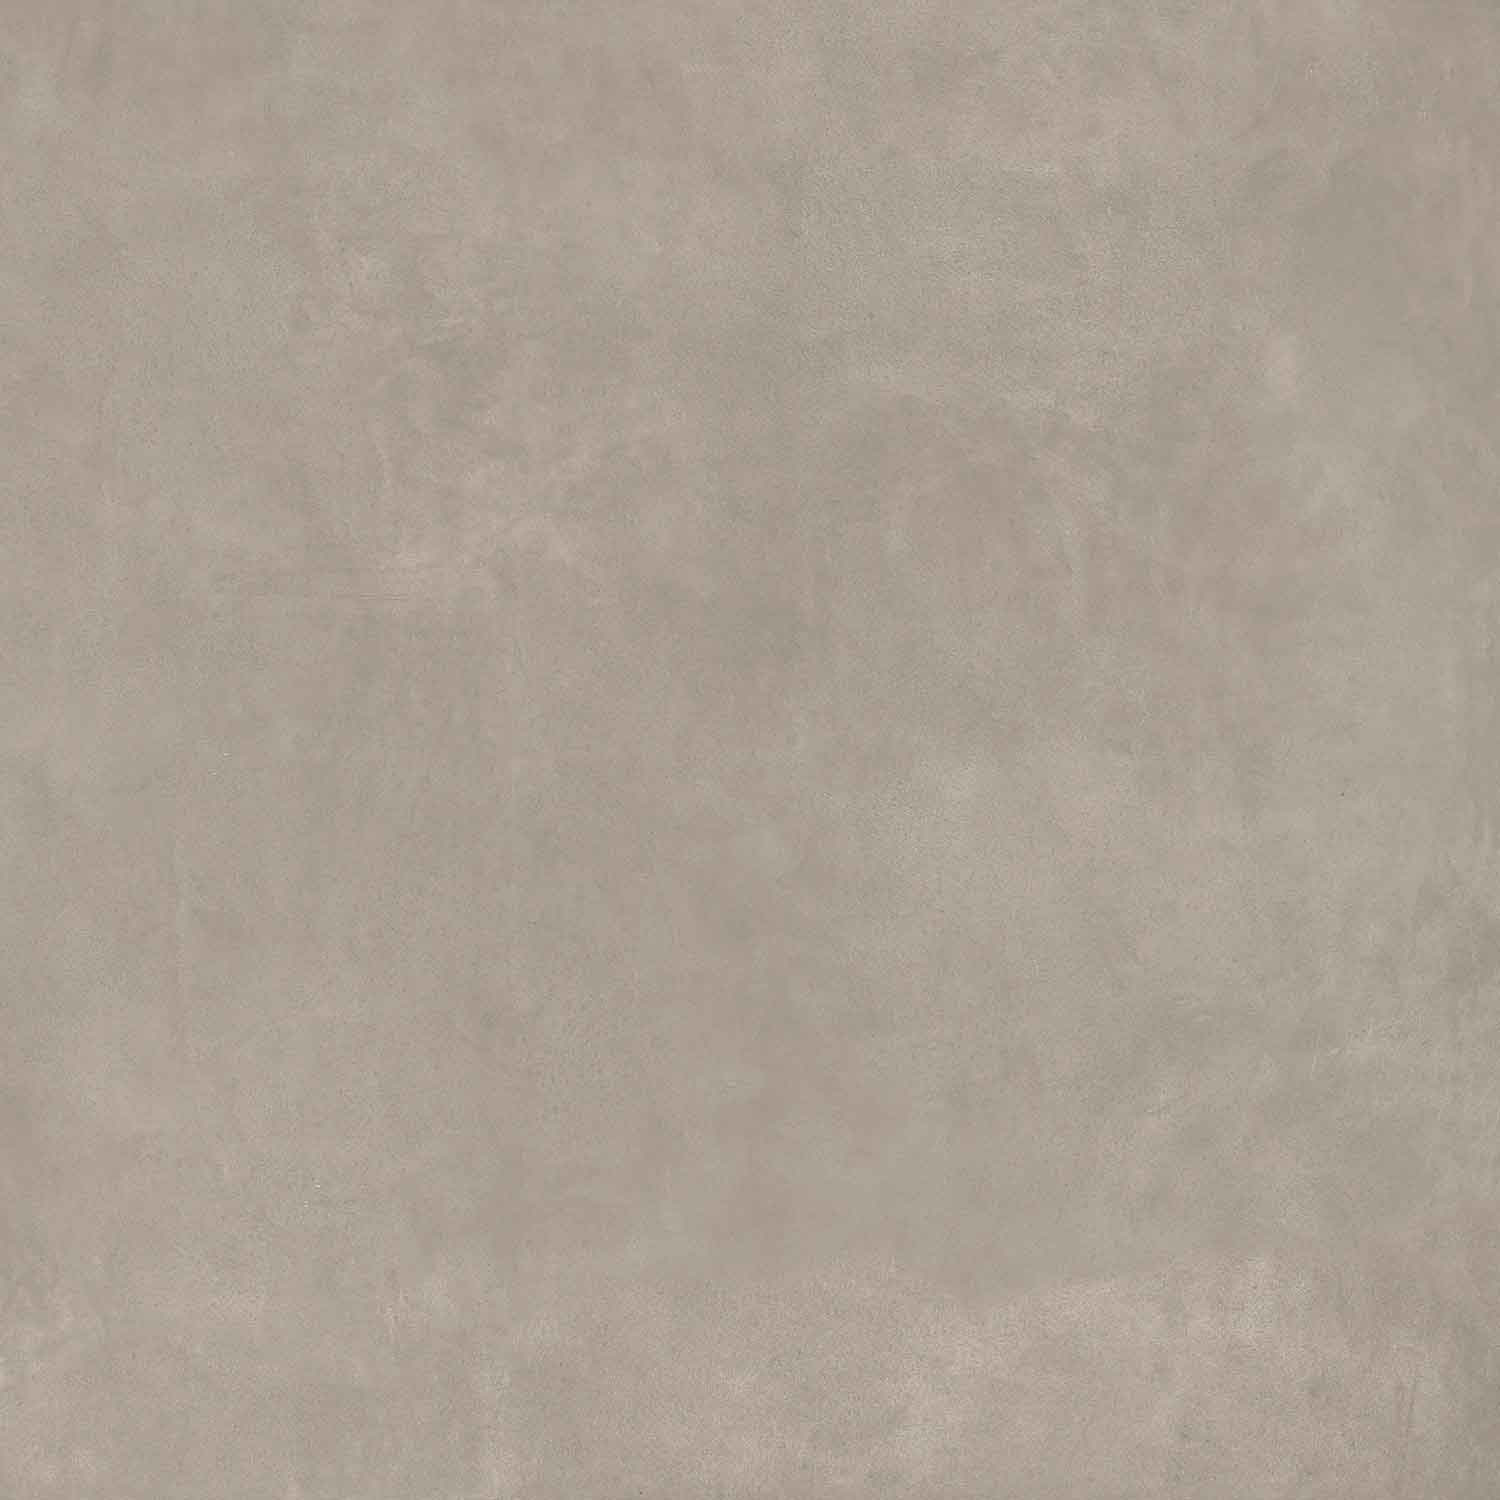 Buildtech 2.0 CE Mud Slate-hammered 20mm 60 x 60